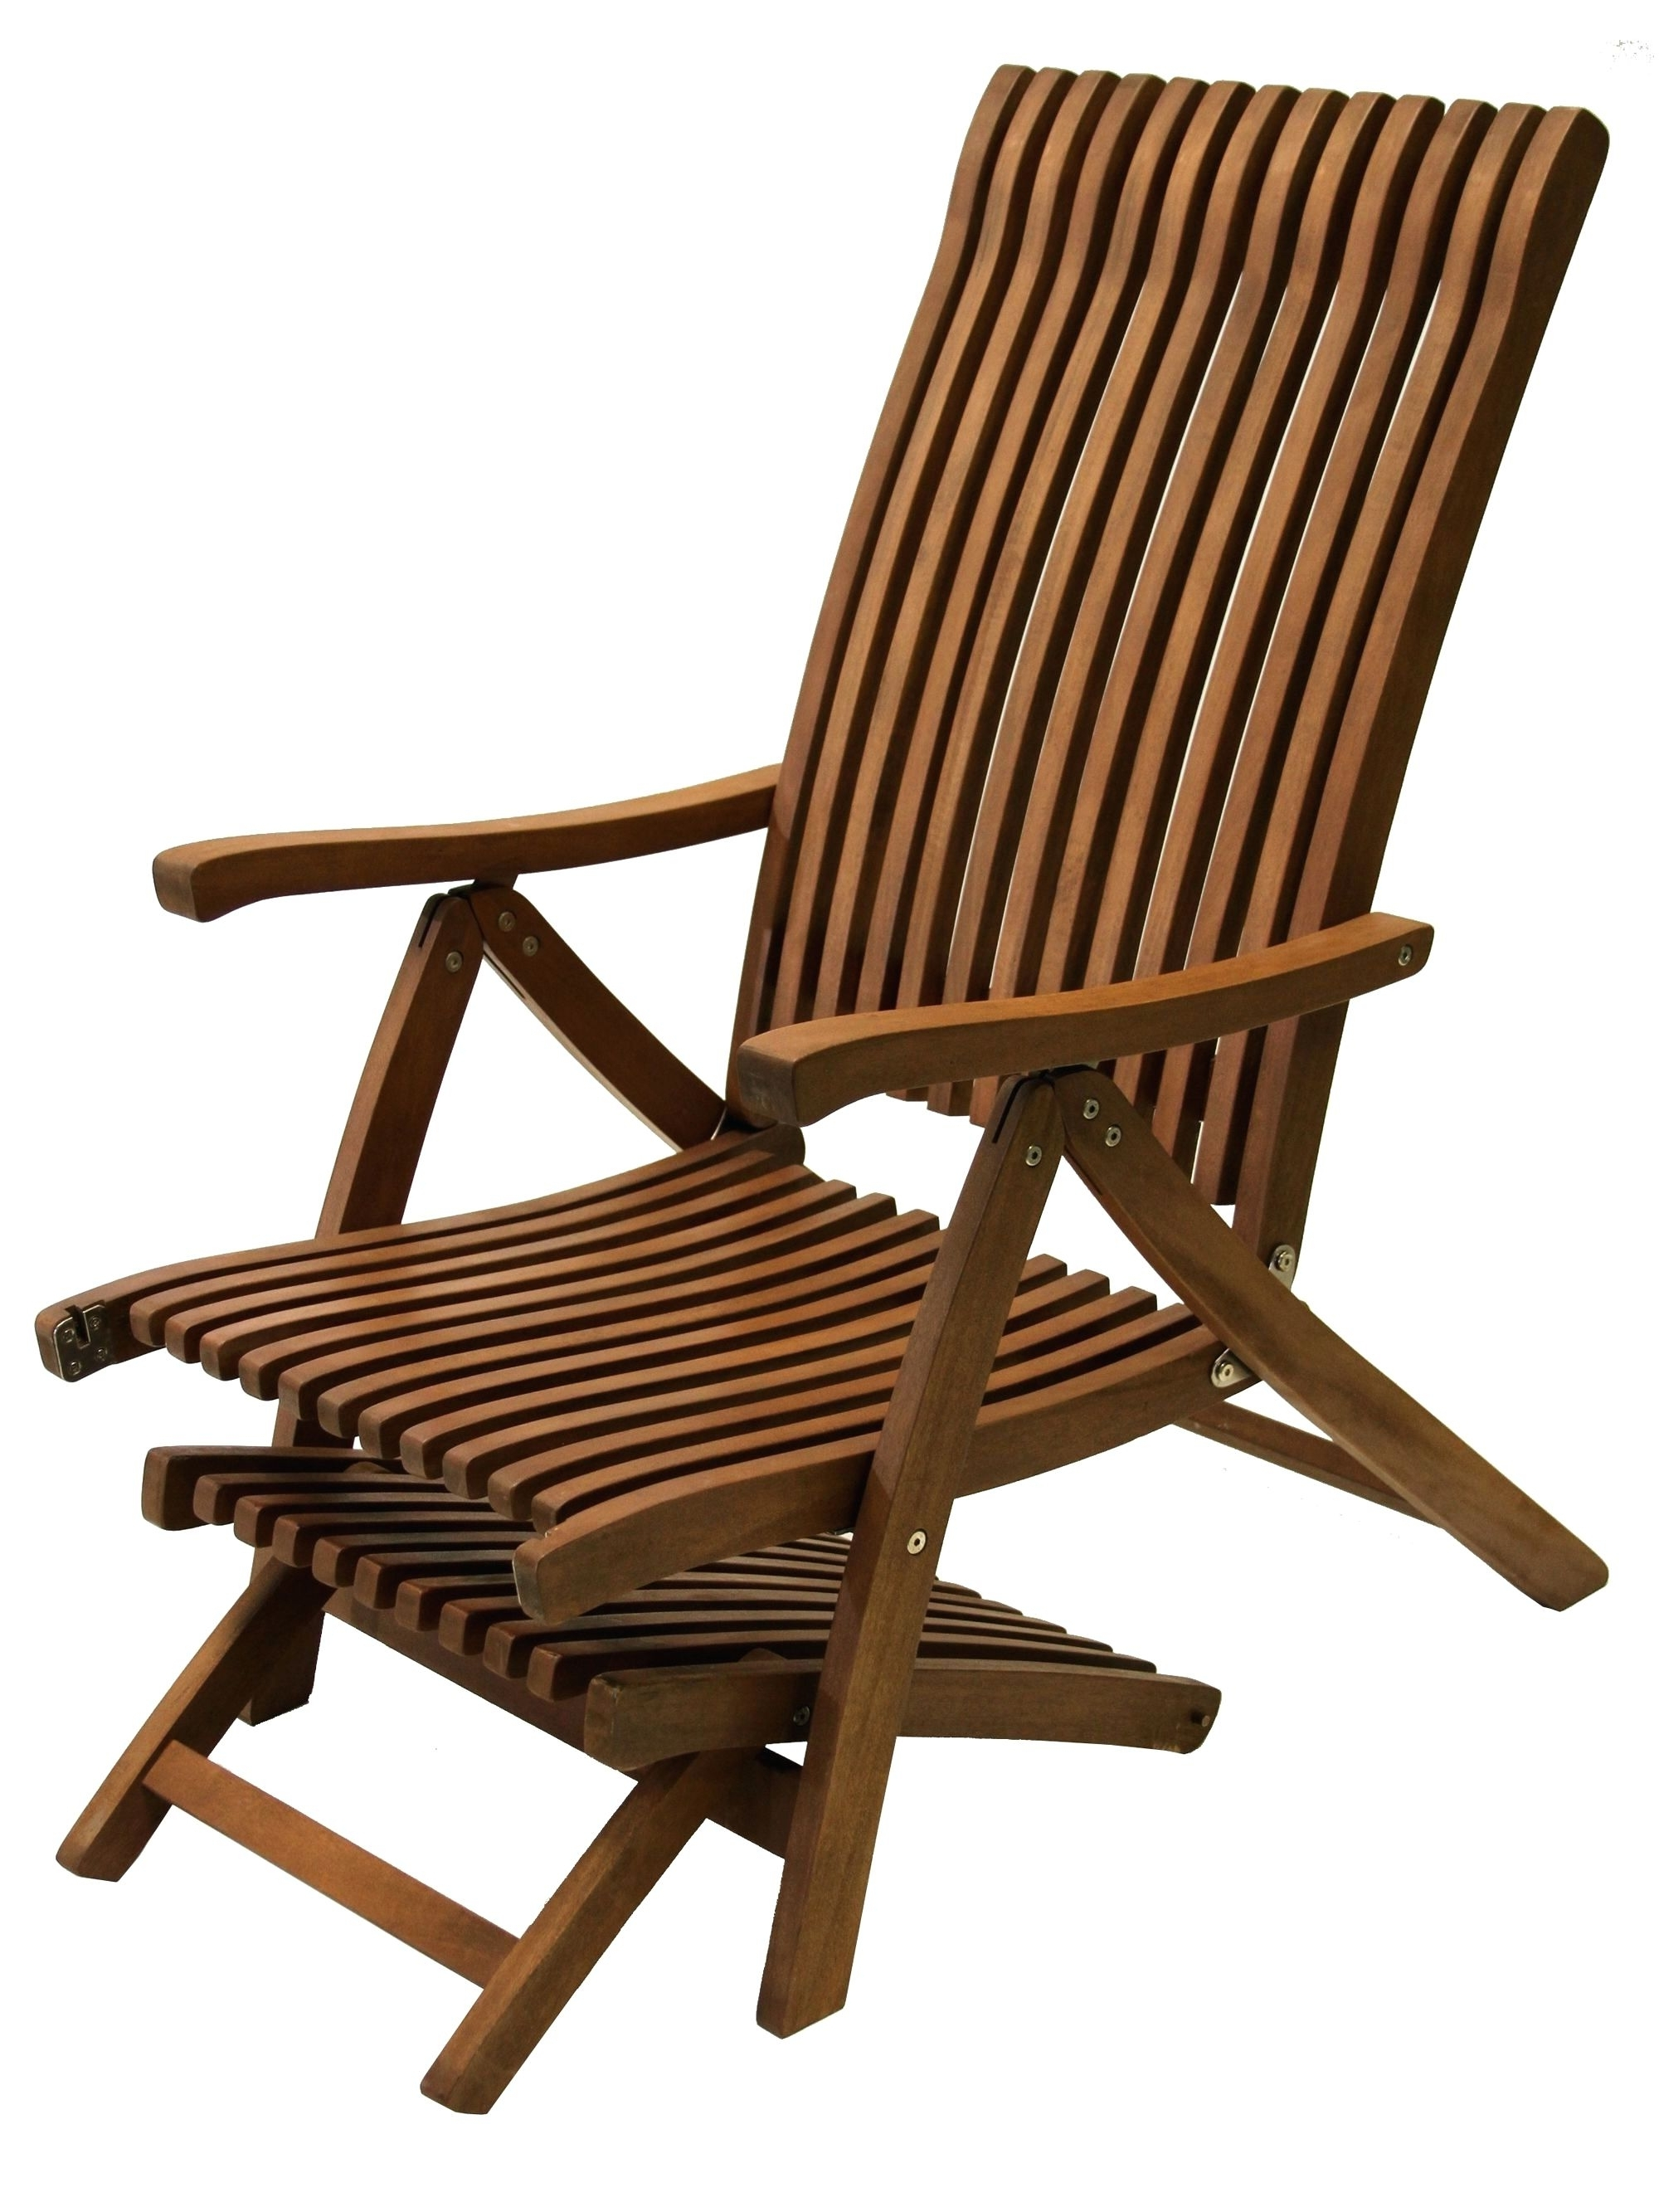 Patio Furniture Chaise Cushions: 2019 Best Of Web Chaise Lounge Lawn Chairs